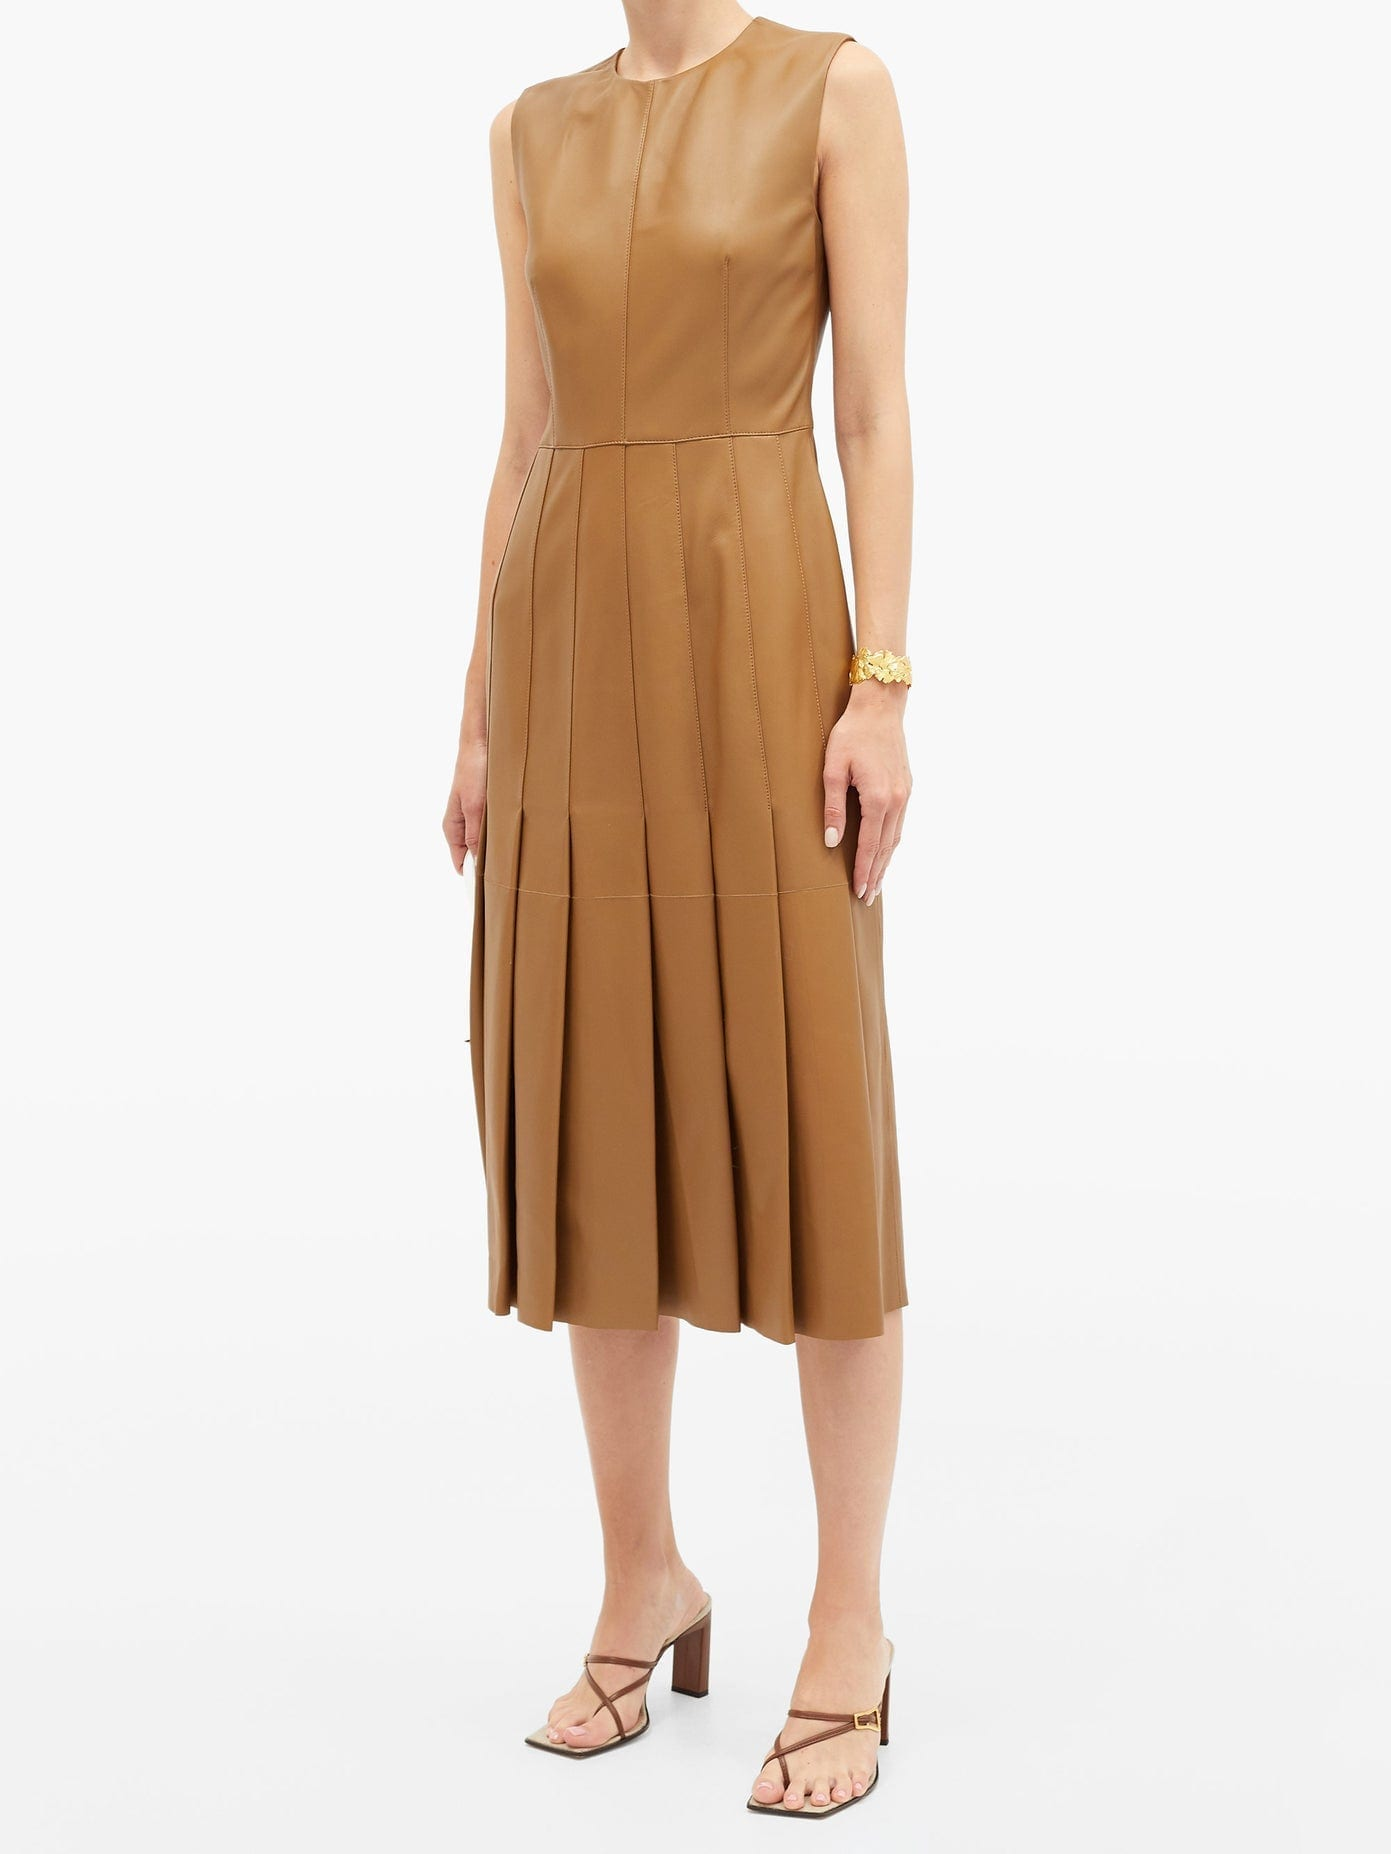 JOSEPH Demry Leather Pleated Dress